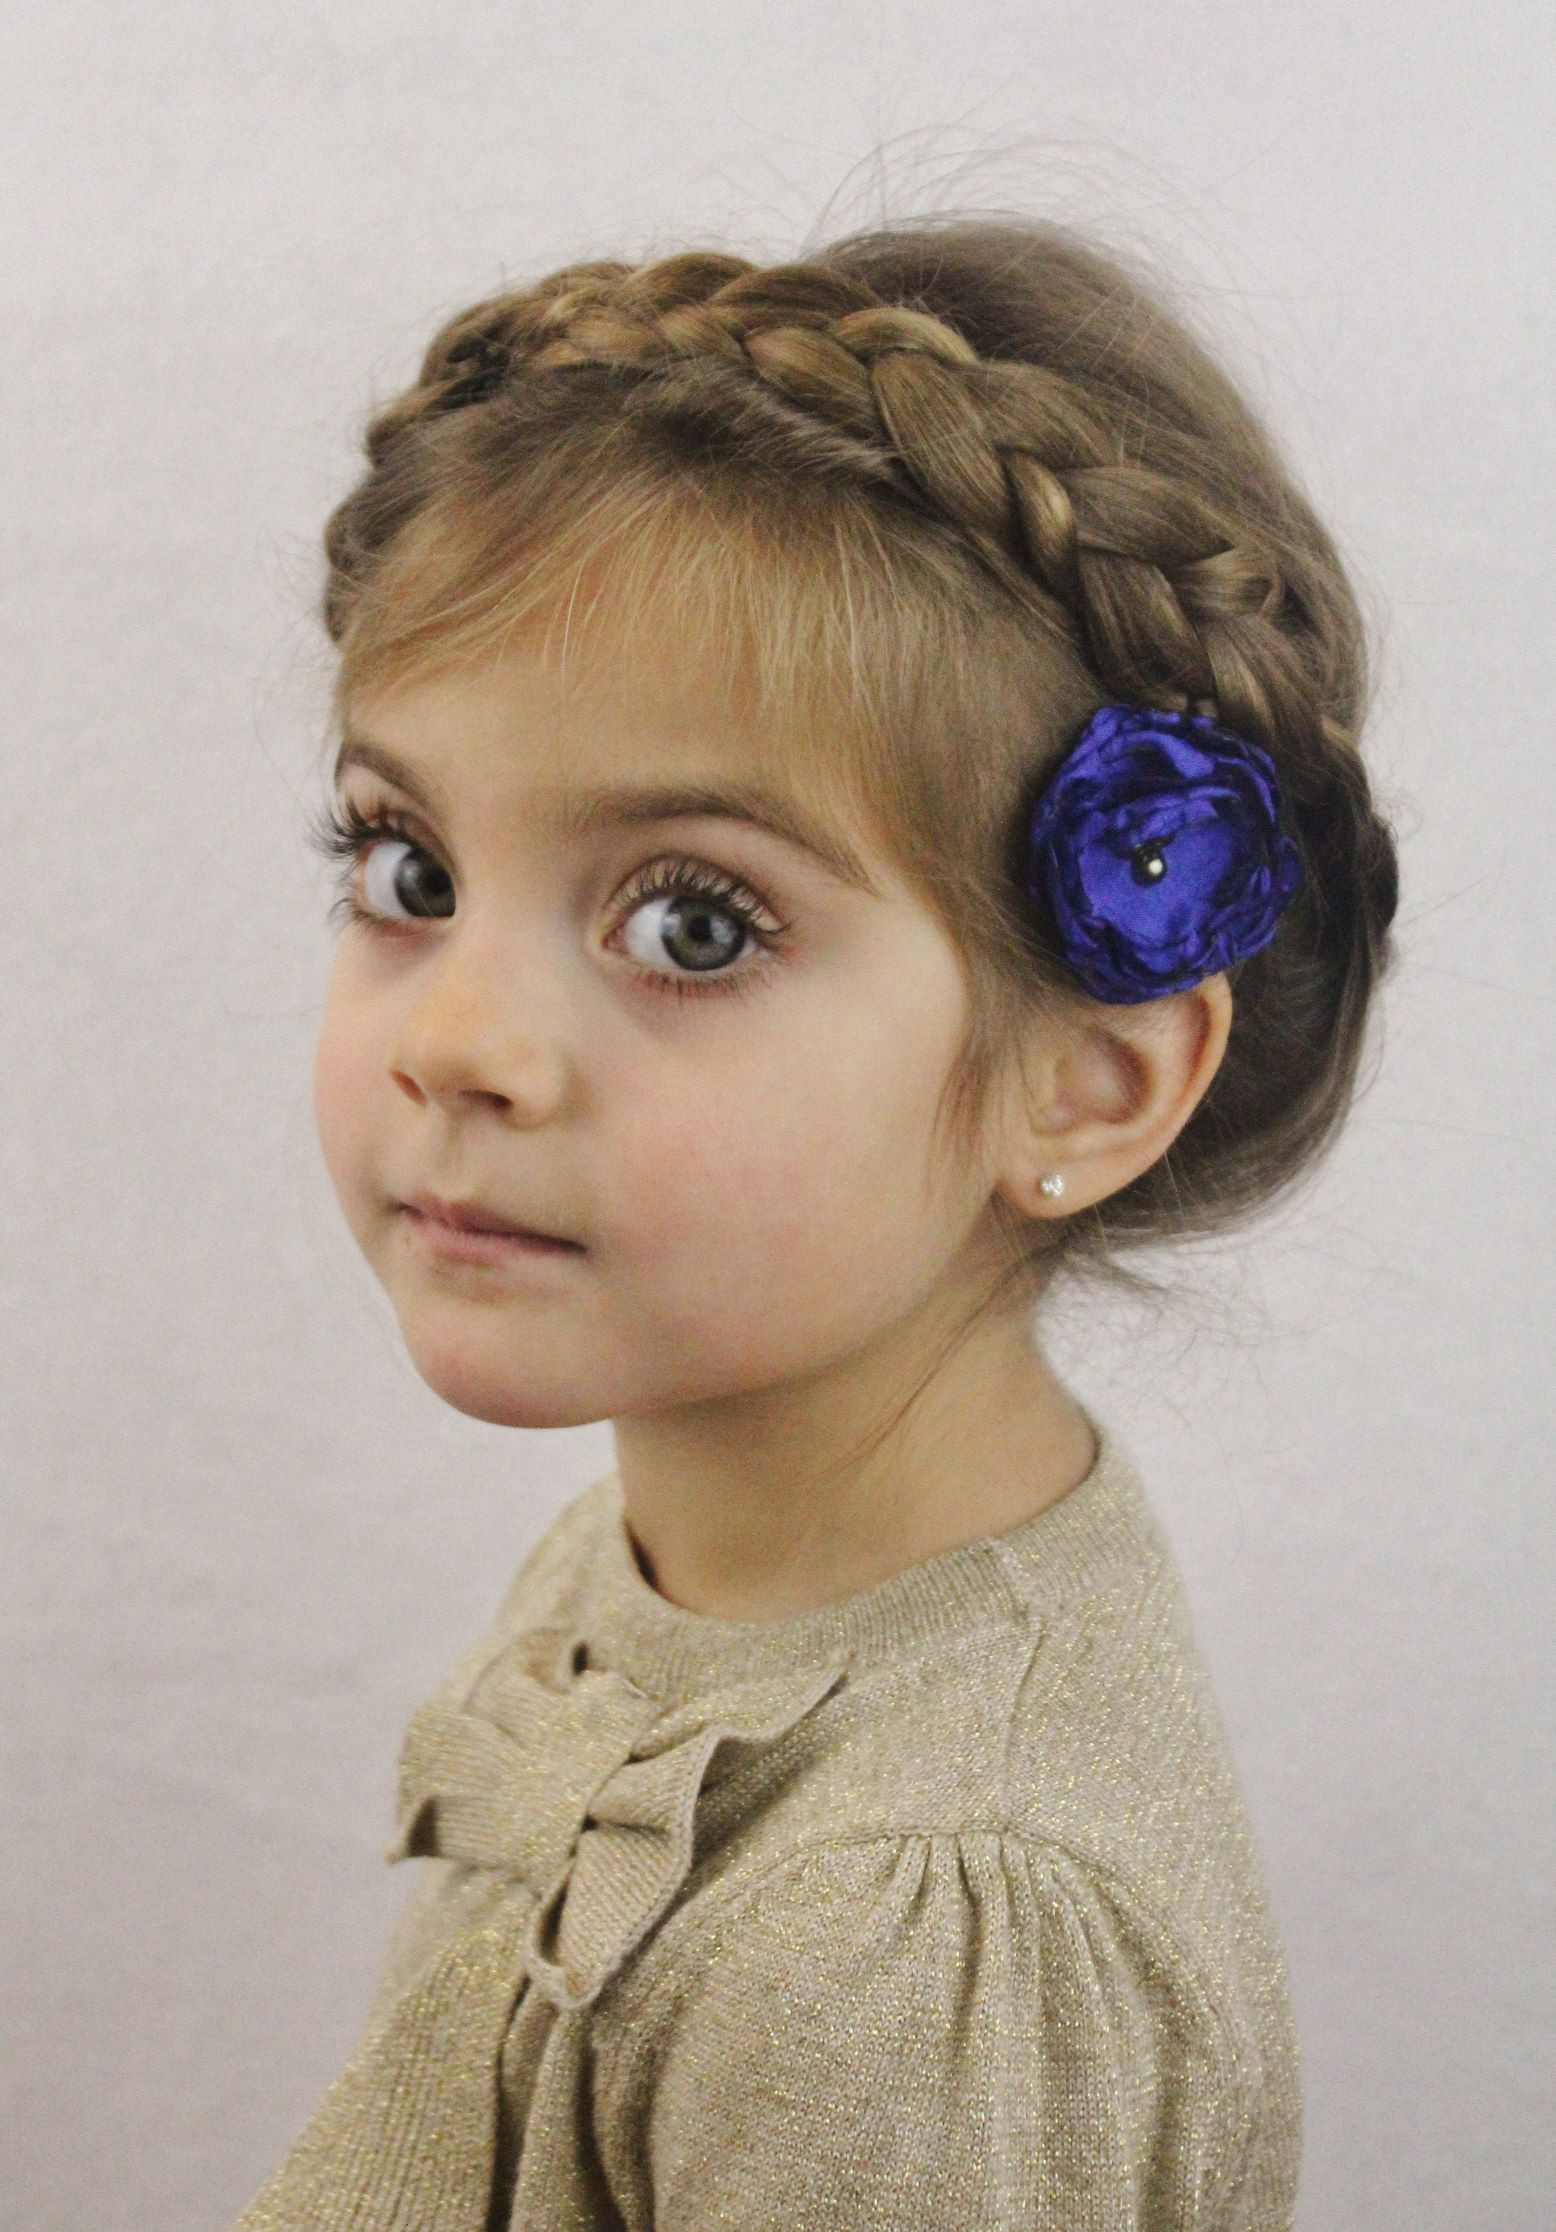 Cool Hairstyles For Little Girl  30 Super Cool Hairstyles For Girls